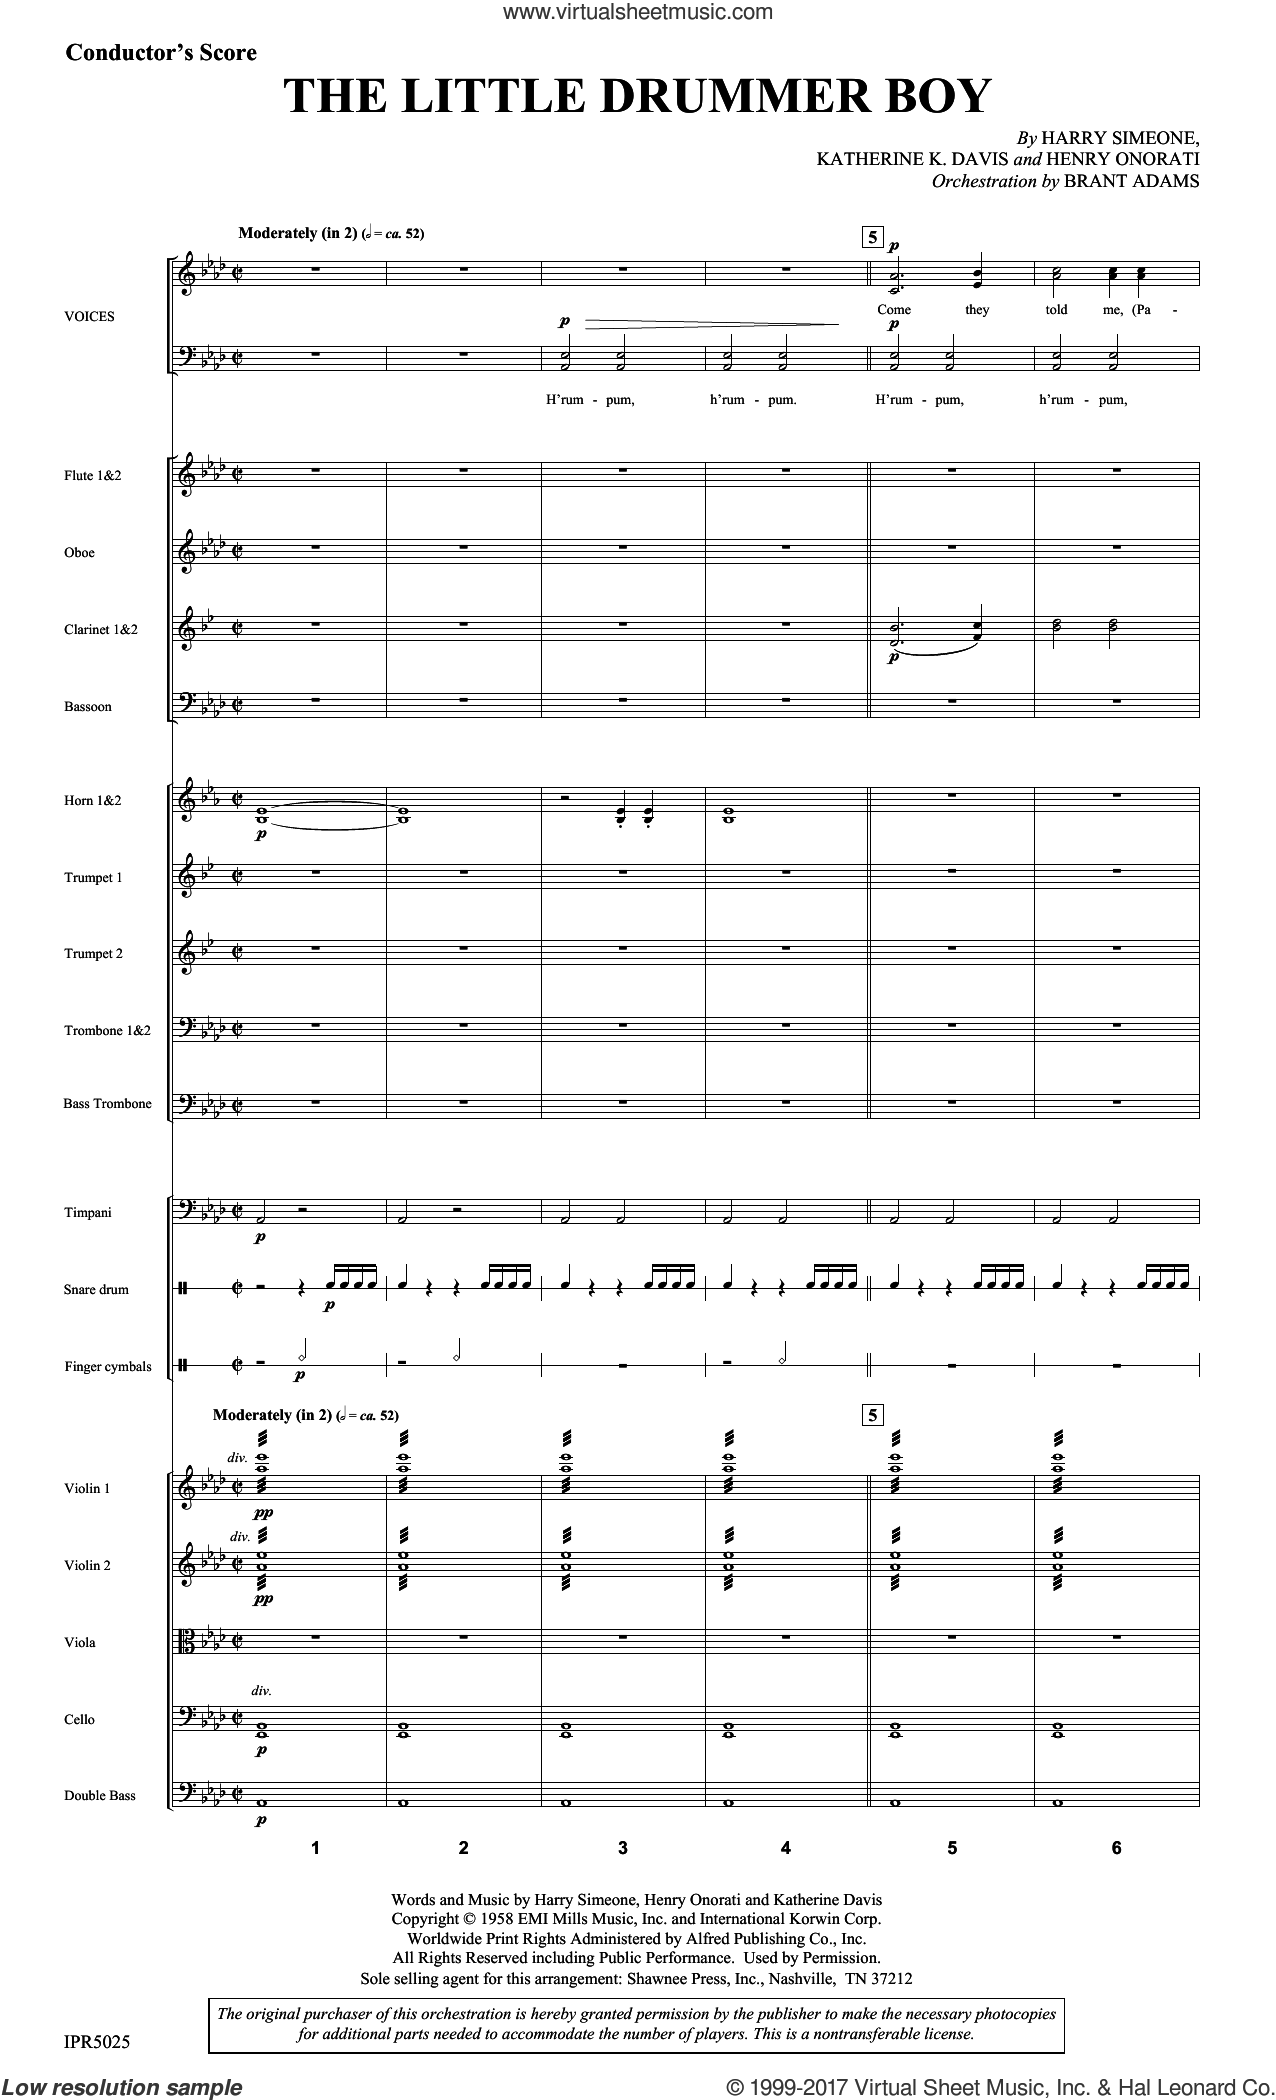 The Little Drummer Boy (COMPLETE) sheet music for orchestra/band by Harry Simeone, Henry Onorati and Katherine Davis, intermediate skill level